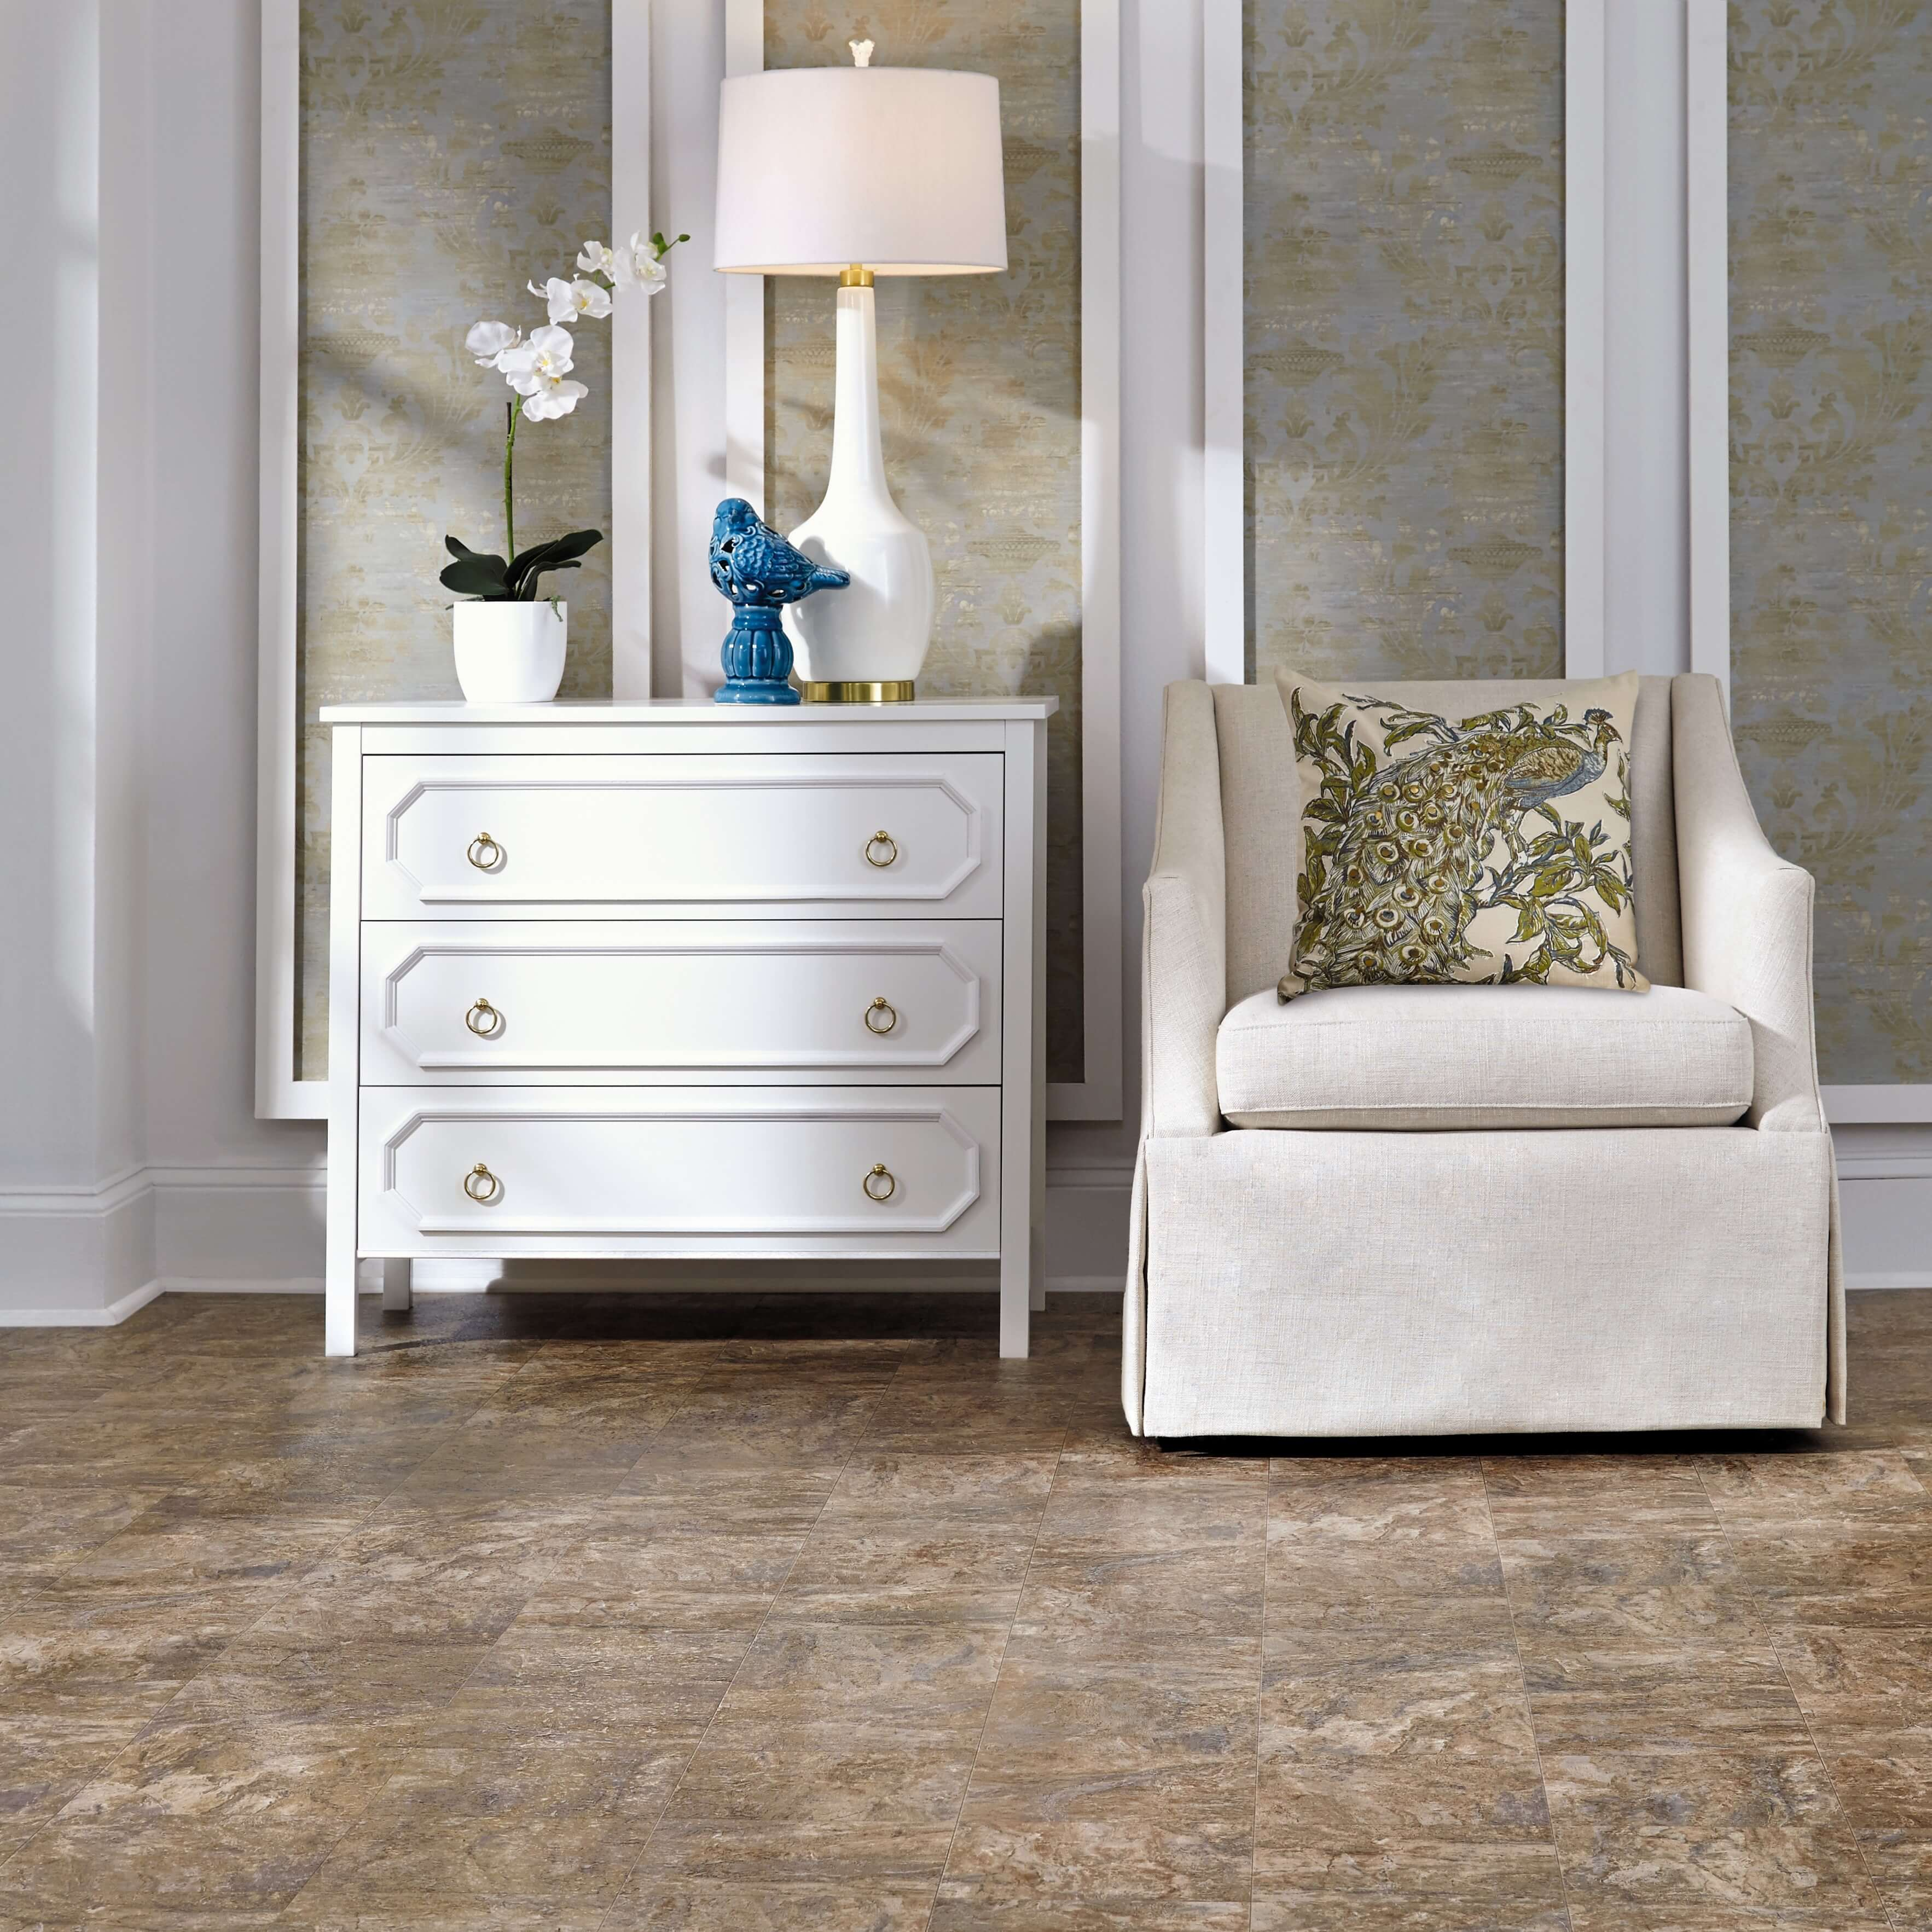 Style Your Home with Vinyl Tile Flooring this Summer